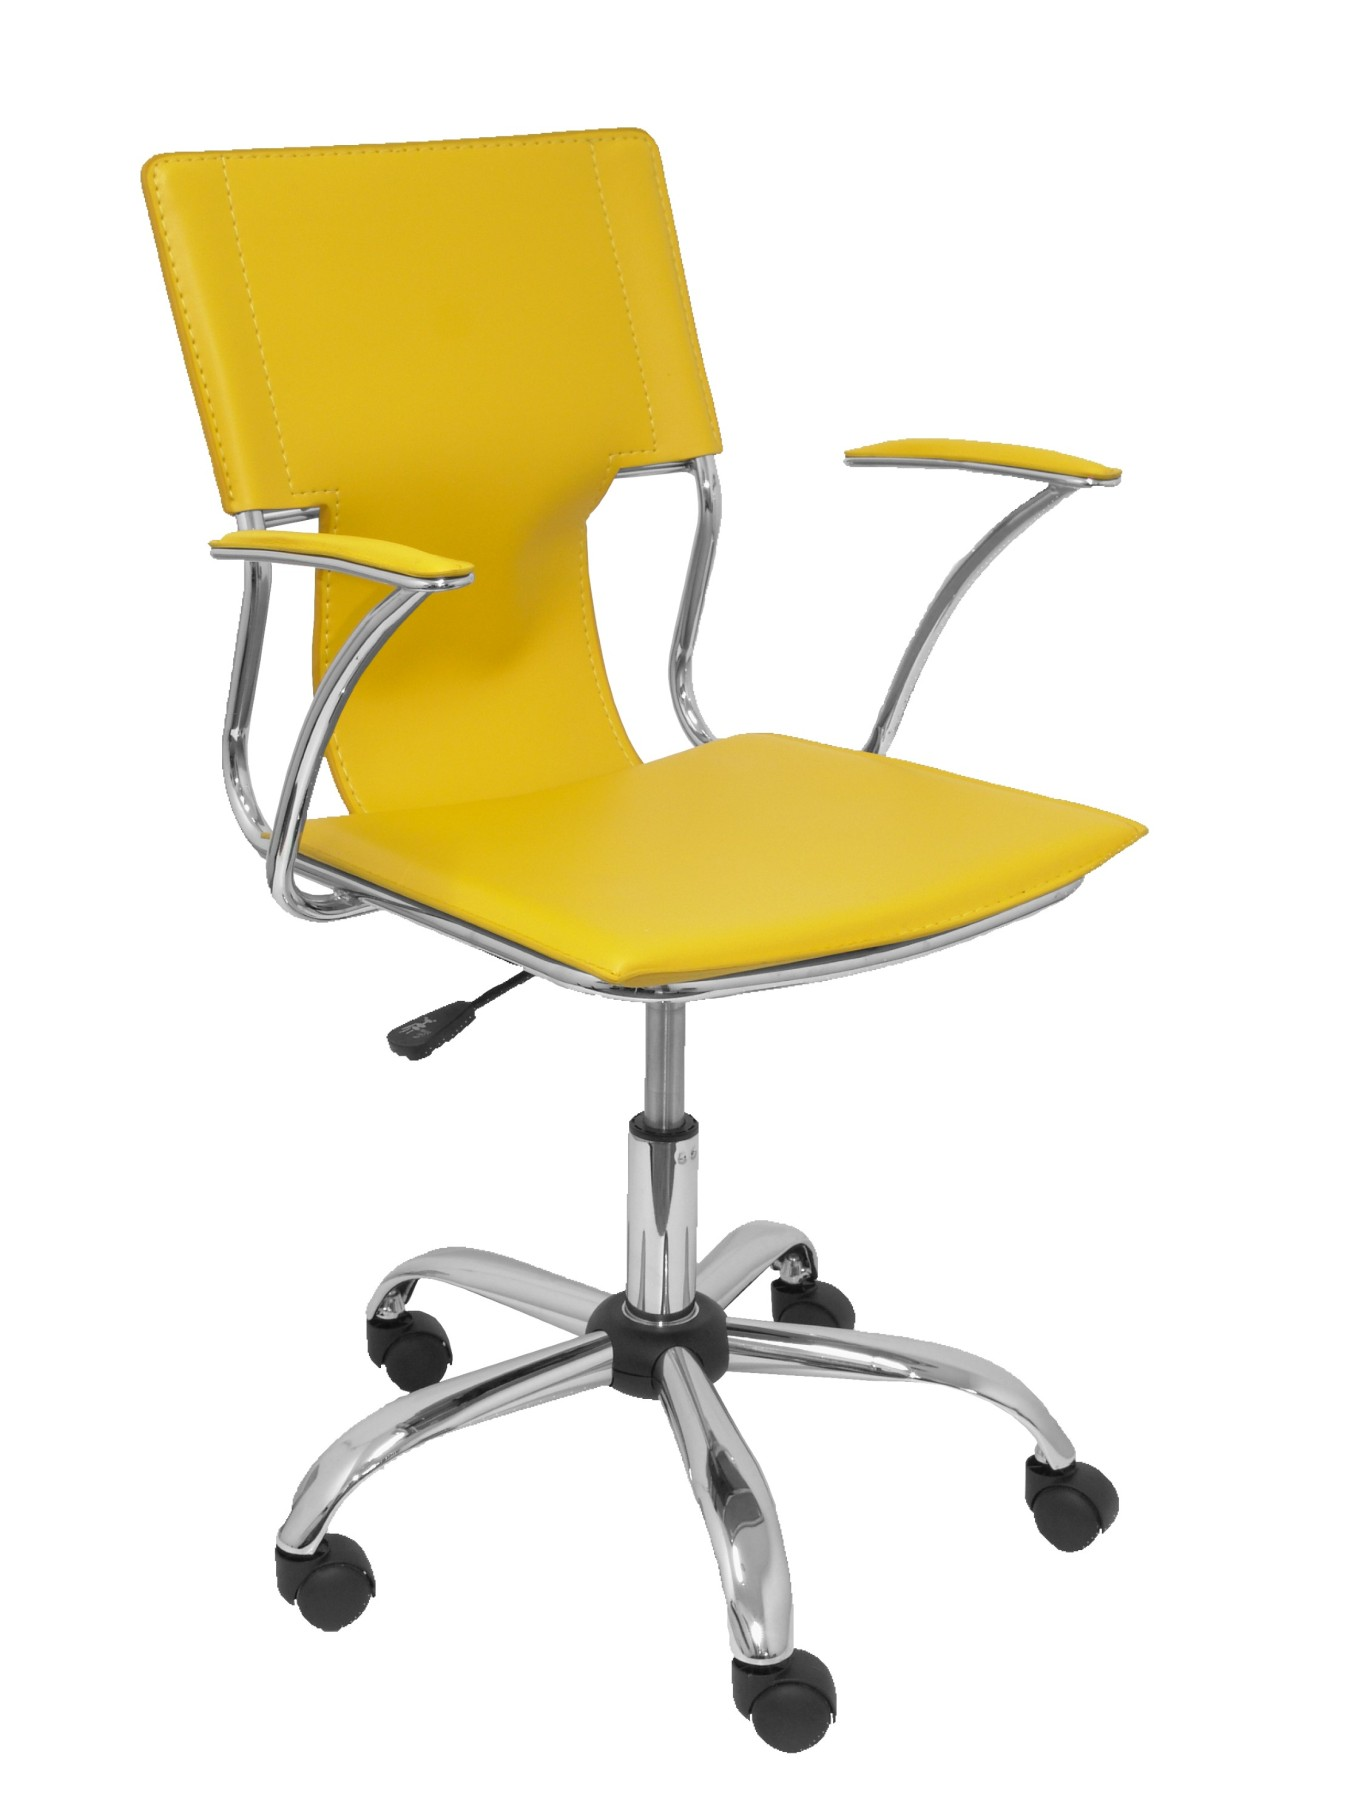 OUTLET Ergonomic Office Chair With Arms Fixed Adjustable Height And Swivel 360 °-Seat And Backrest Tapestry